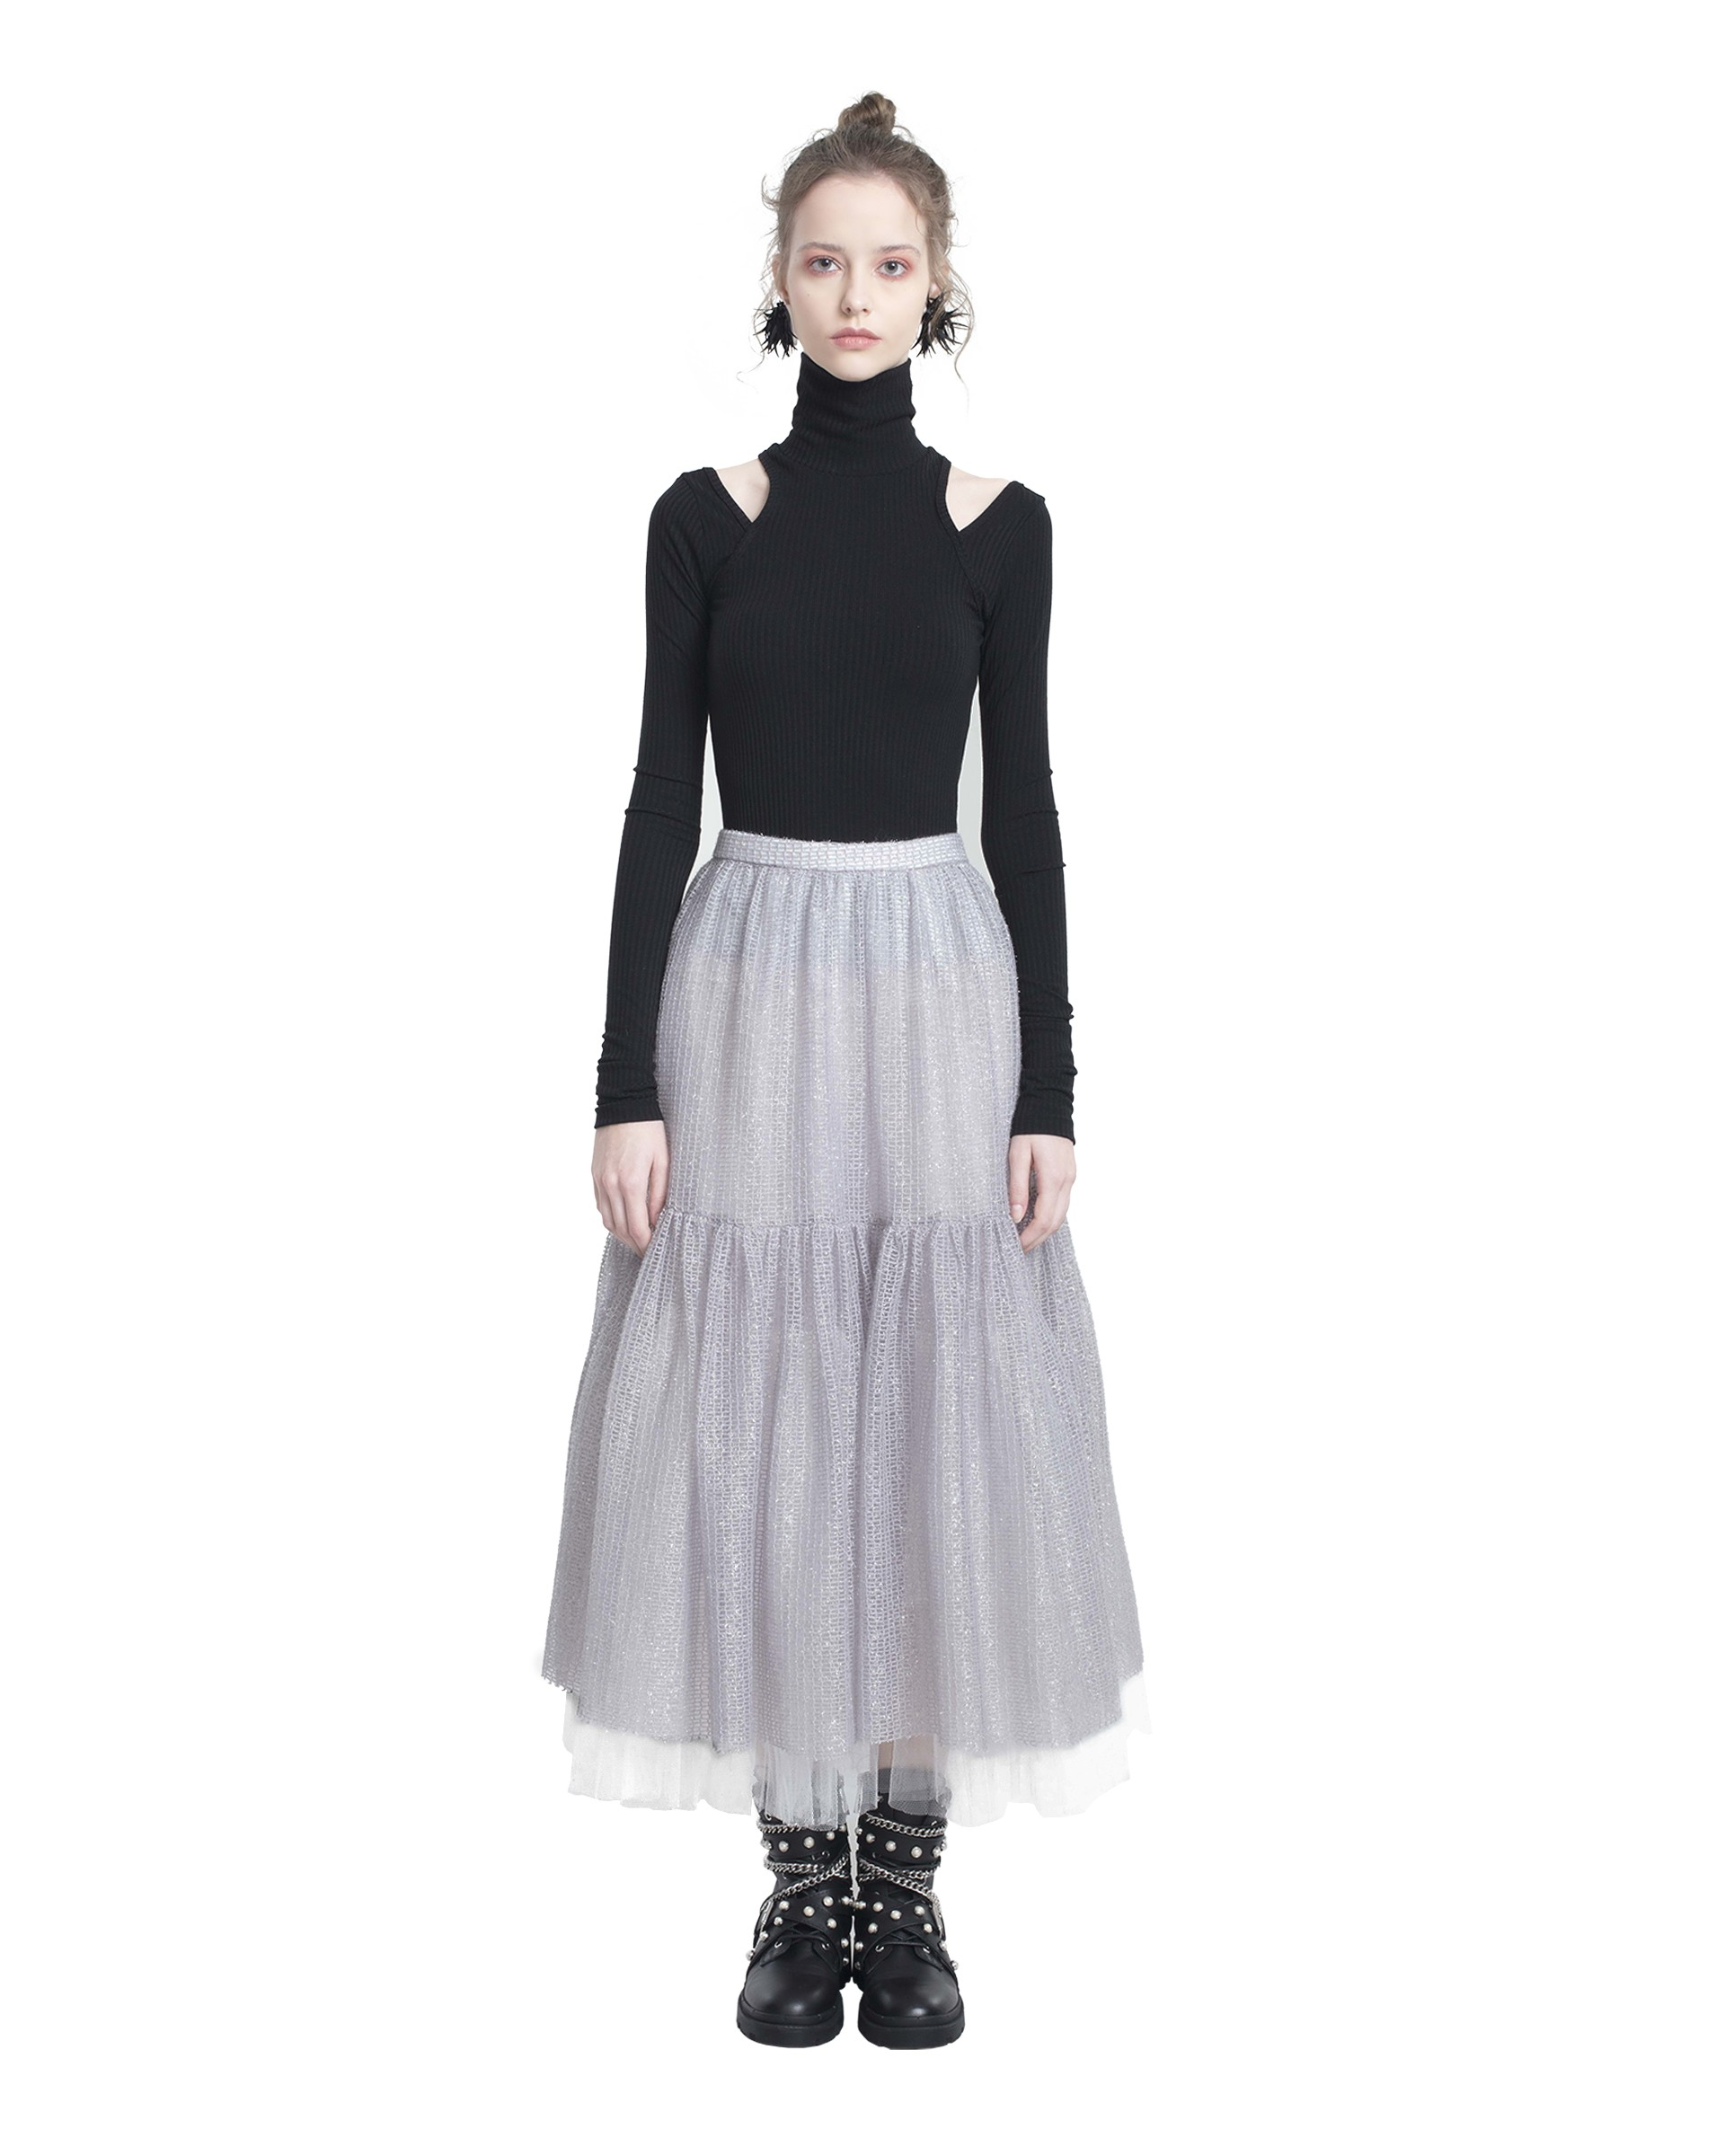 Tiered Sparkly Mesh Skirt